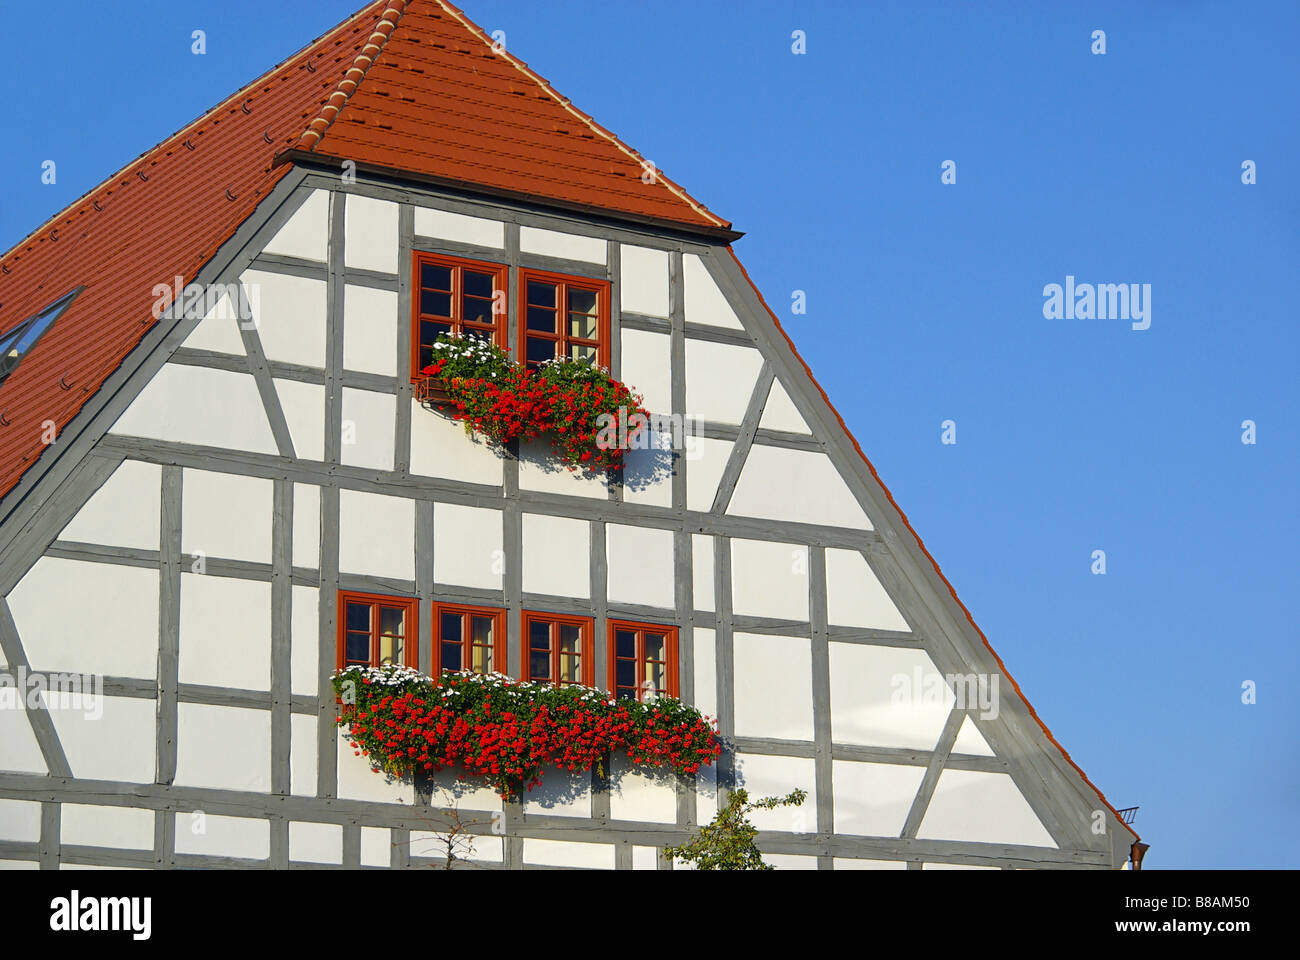 Fachwerkhaus half timber house 02 - Stock Image